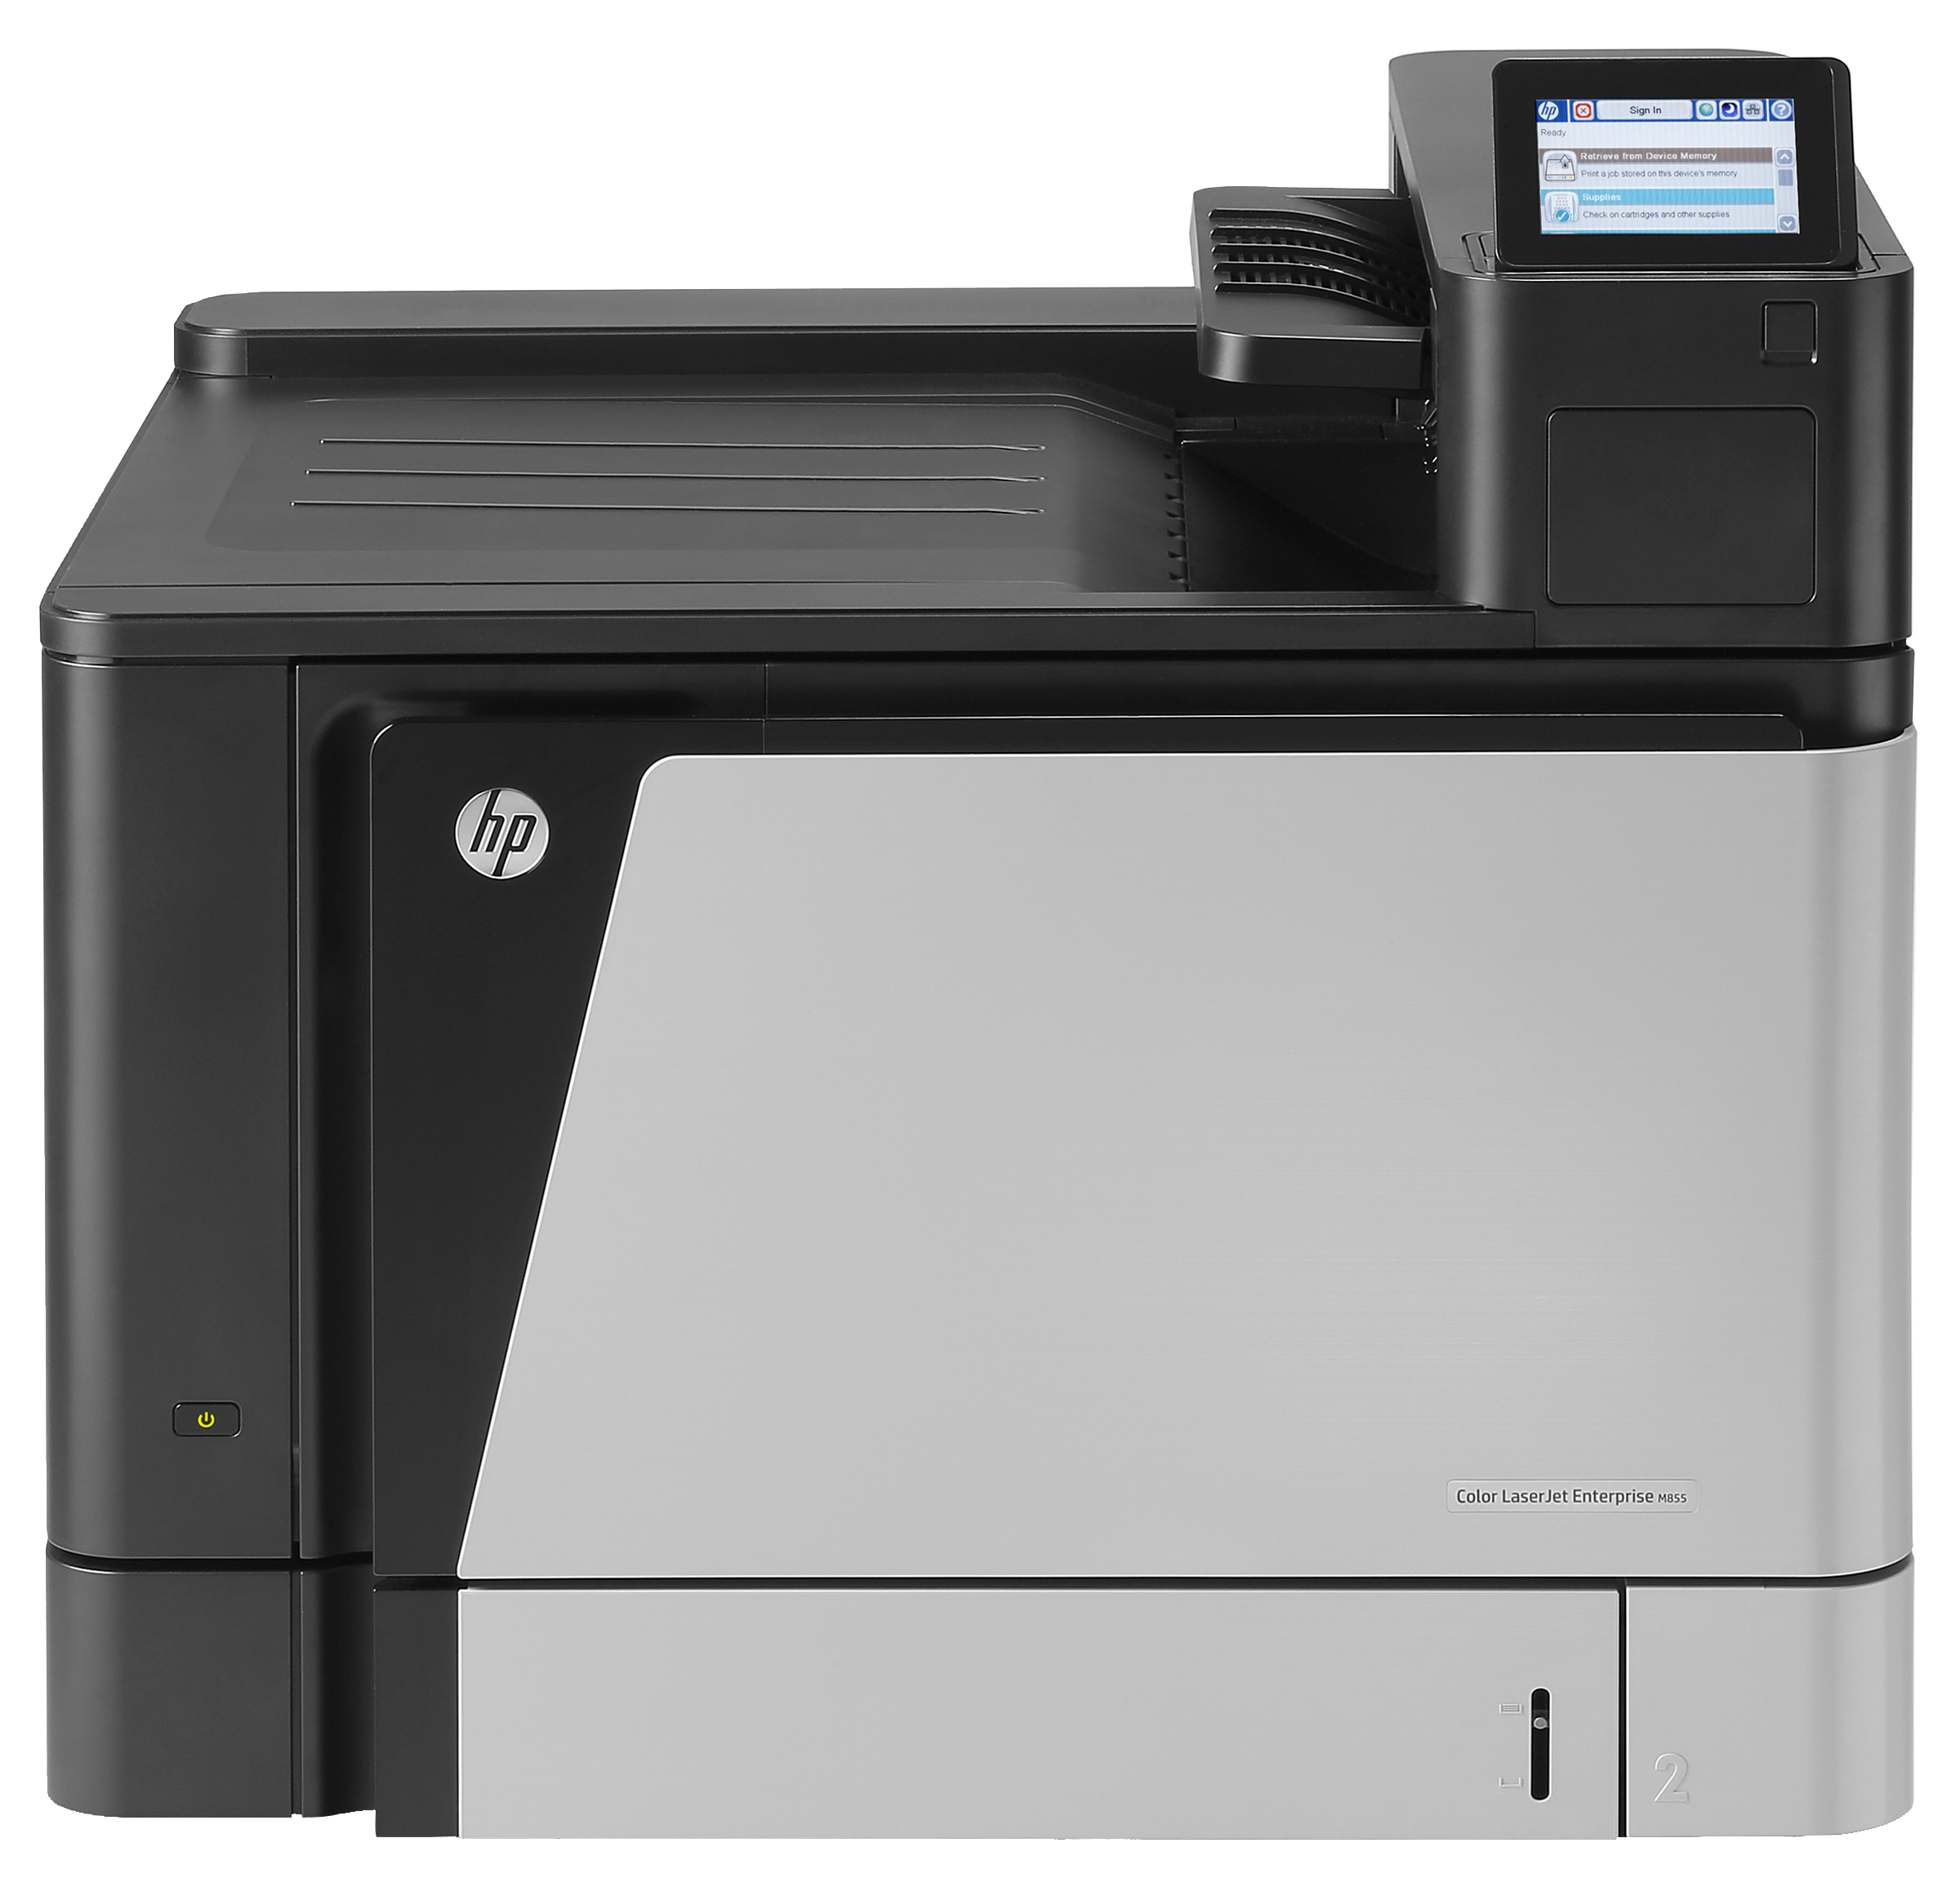 A2W77A HP LaserJet Enterprise M855DN M855 A4 A3 Colour Duplex Network Printer - Refurbished with 3 months RTB warranty